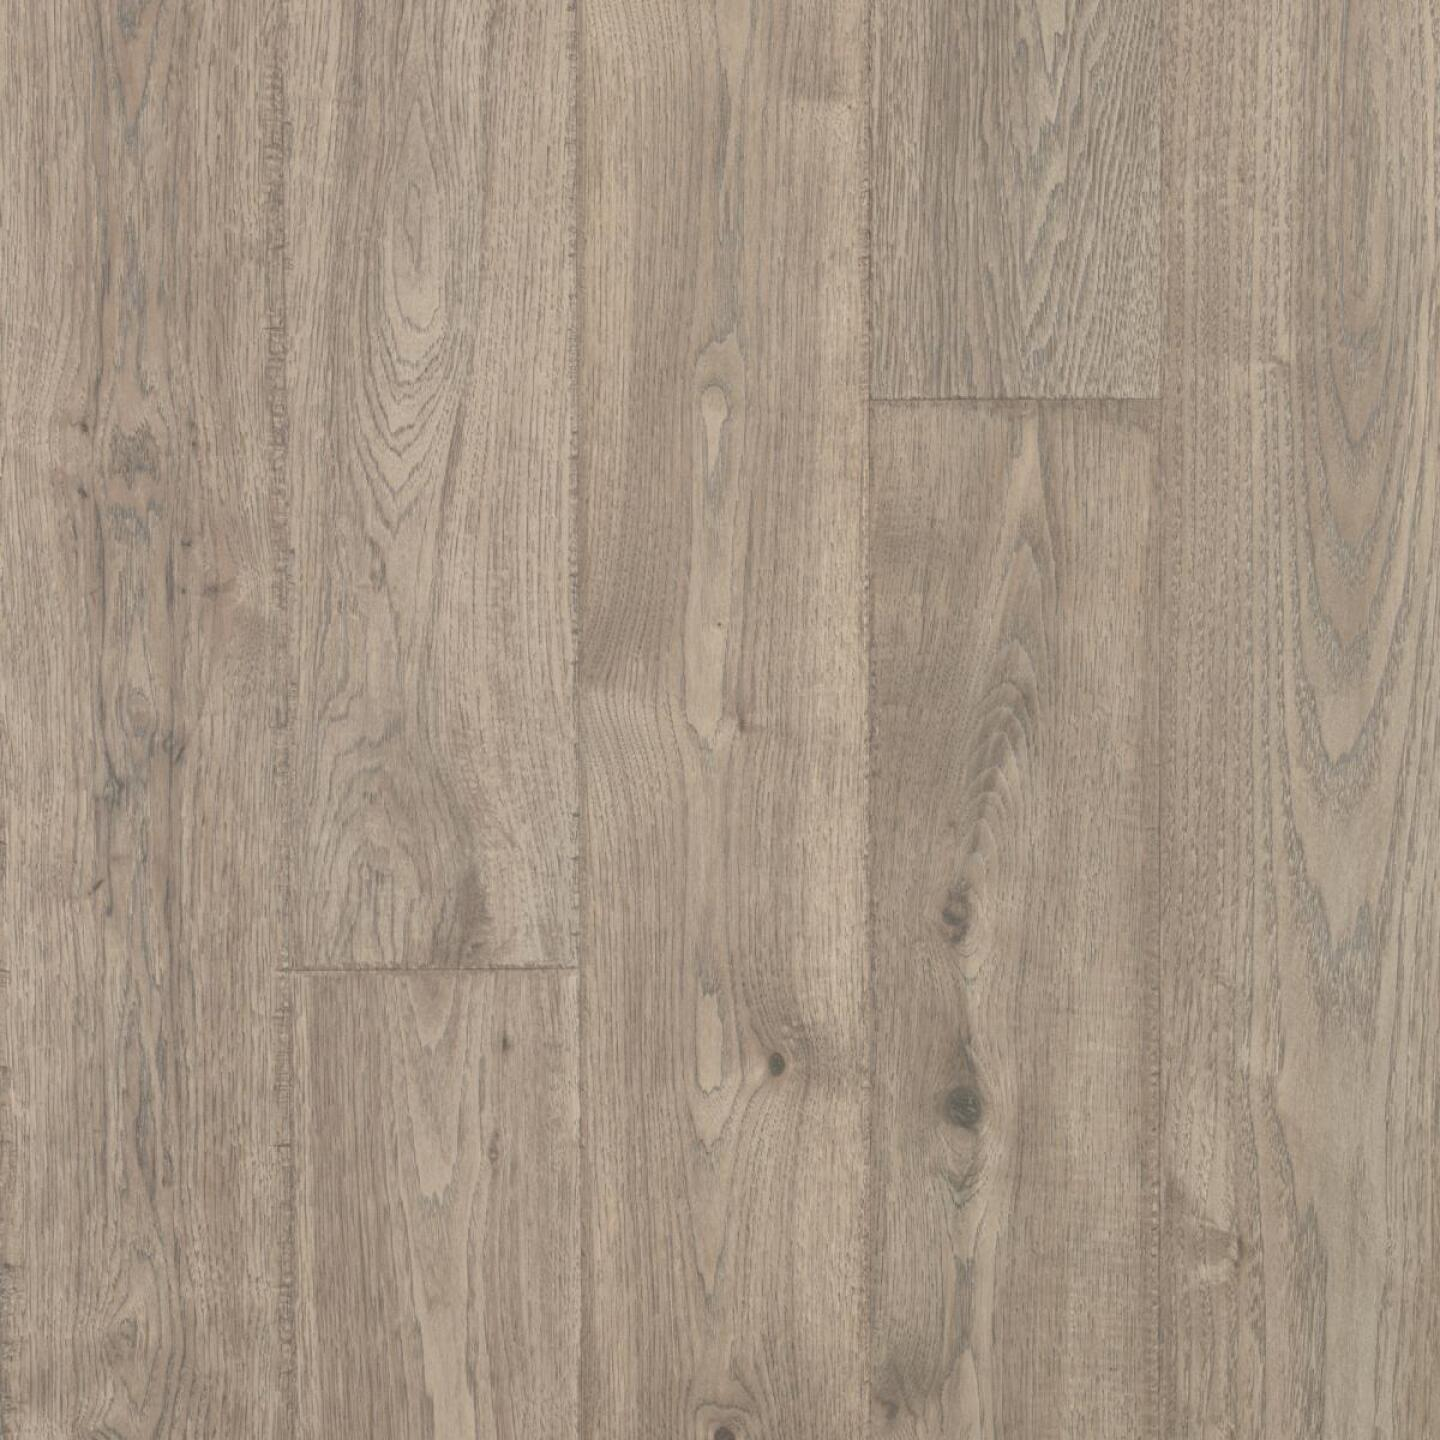 Mohawk RevWood Plus Elderwood Asher Gray 7-1/2 In. W x 54-11/32 In. L Laminate Flooring (16.98 Sq. Ft./Case) Image 2